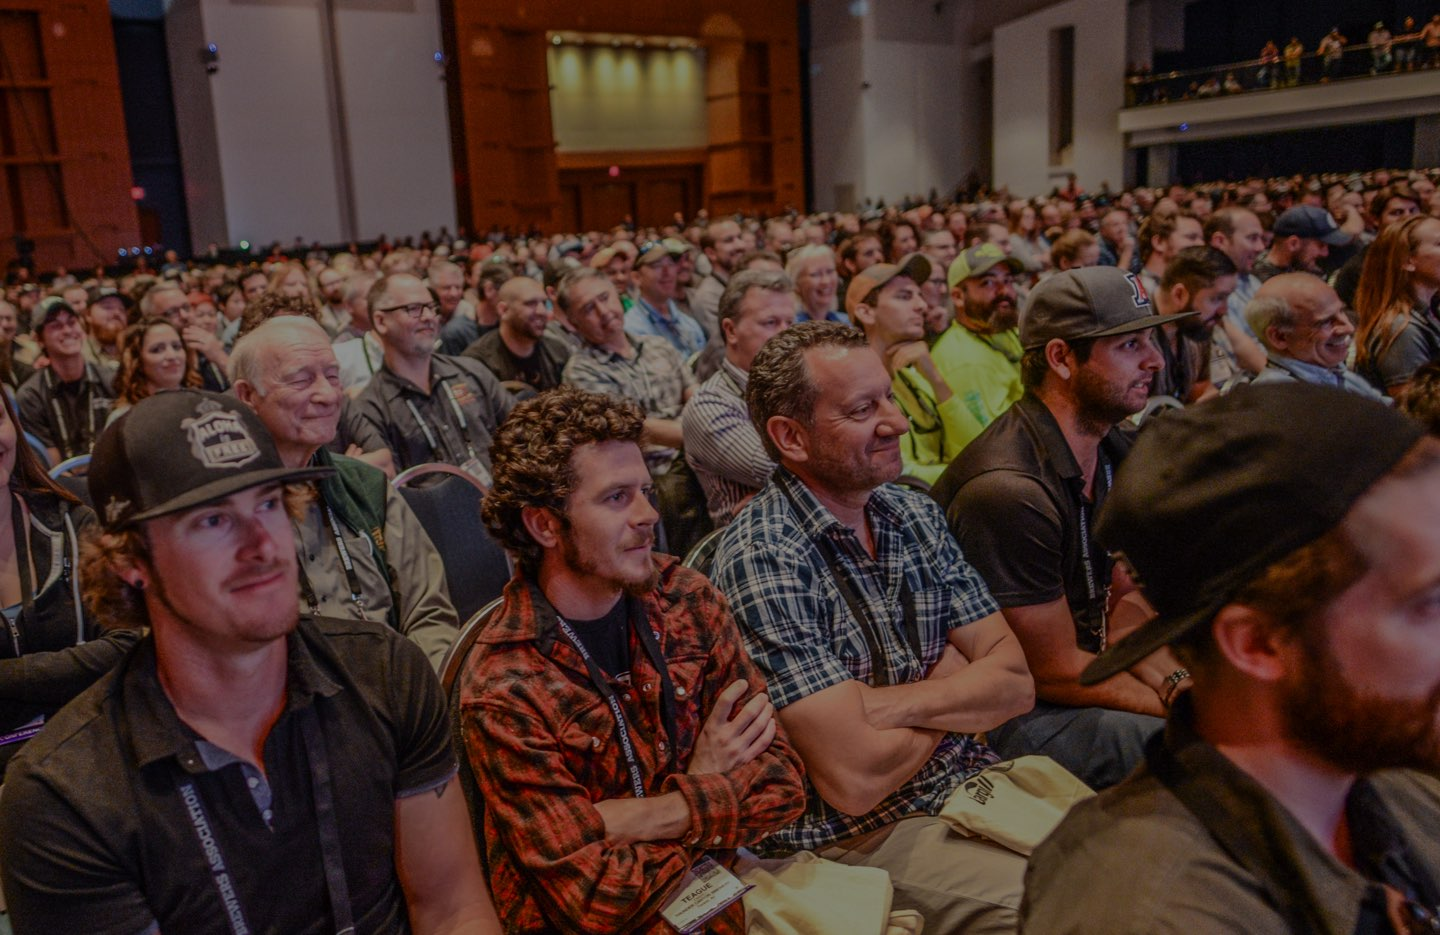 Hotels In Denver >> Craft Brewers Conference - Denver, CO 2019 - Craft Brewers Conference